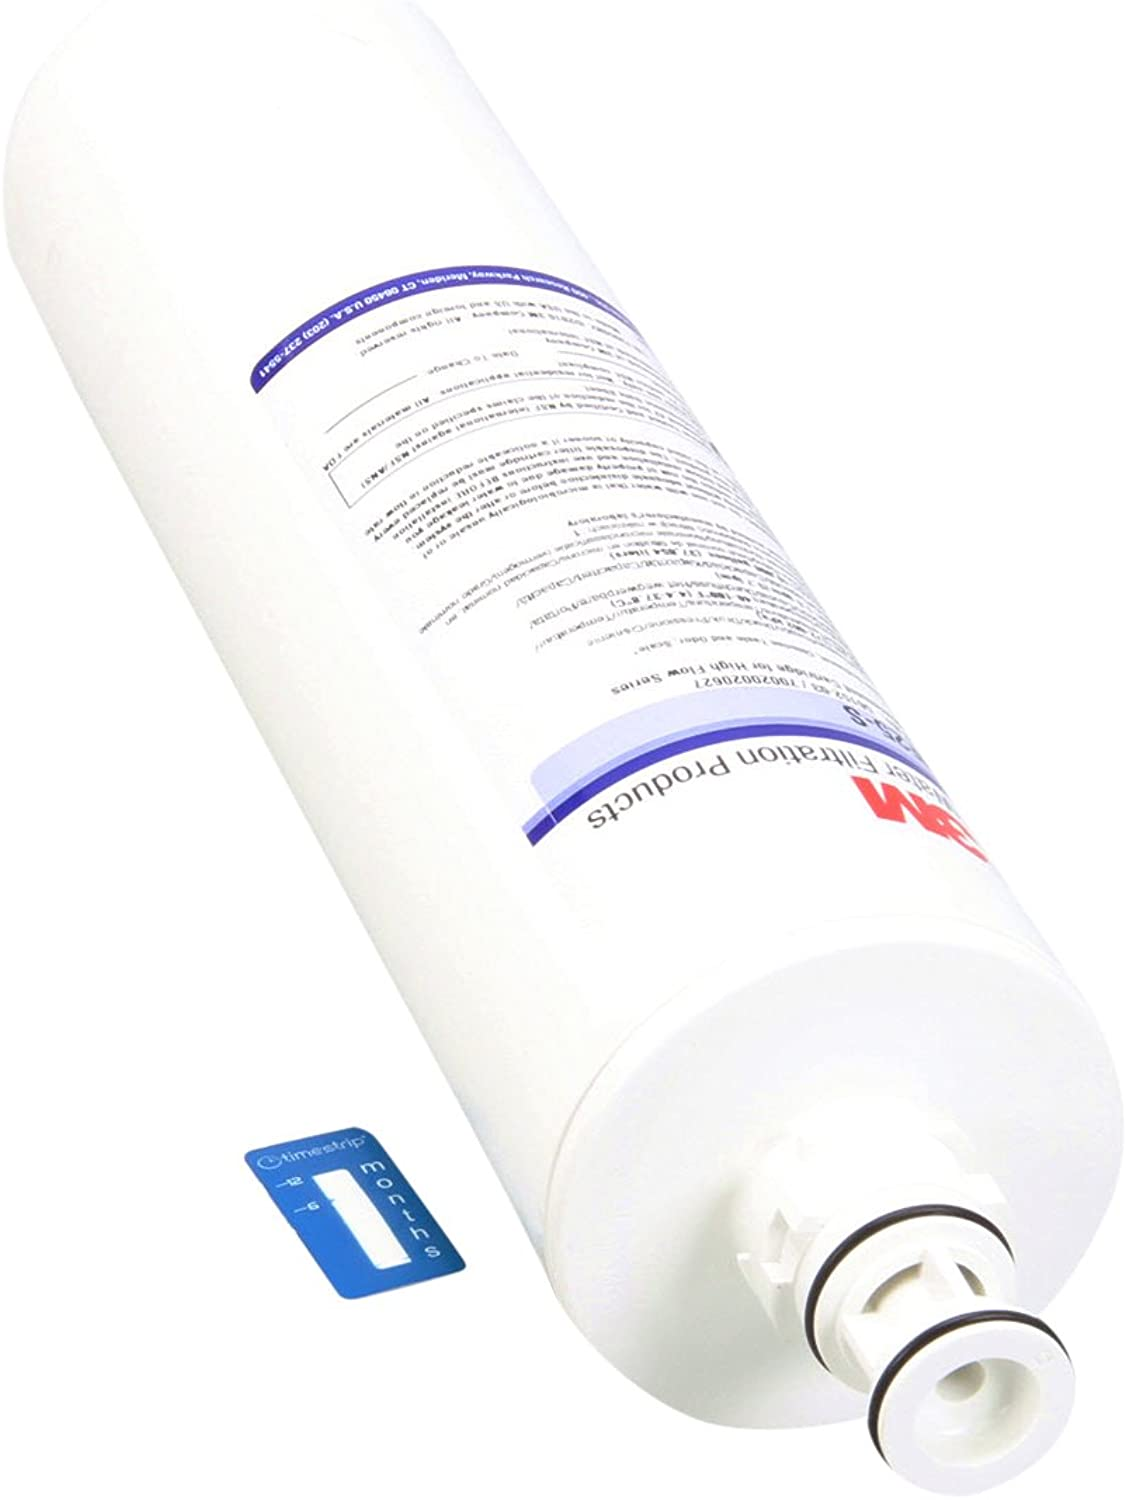 3M Water Filtration Products 56152-03 Cuno 56152-03 Hf25-S Filter Cartridge,